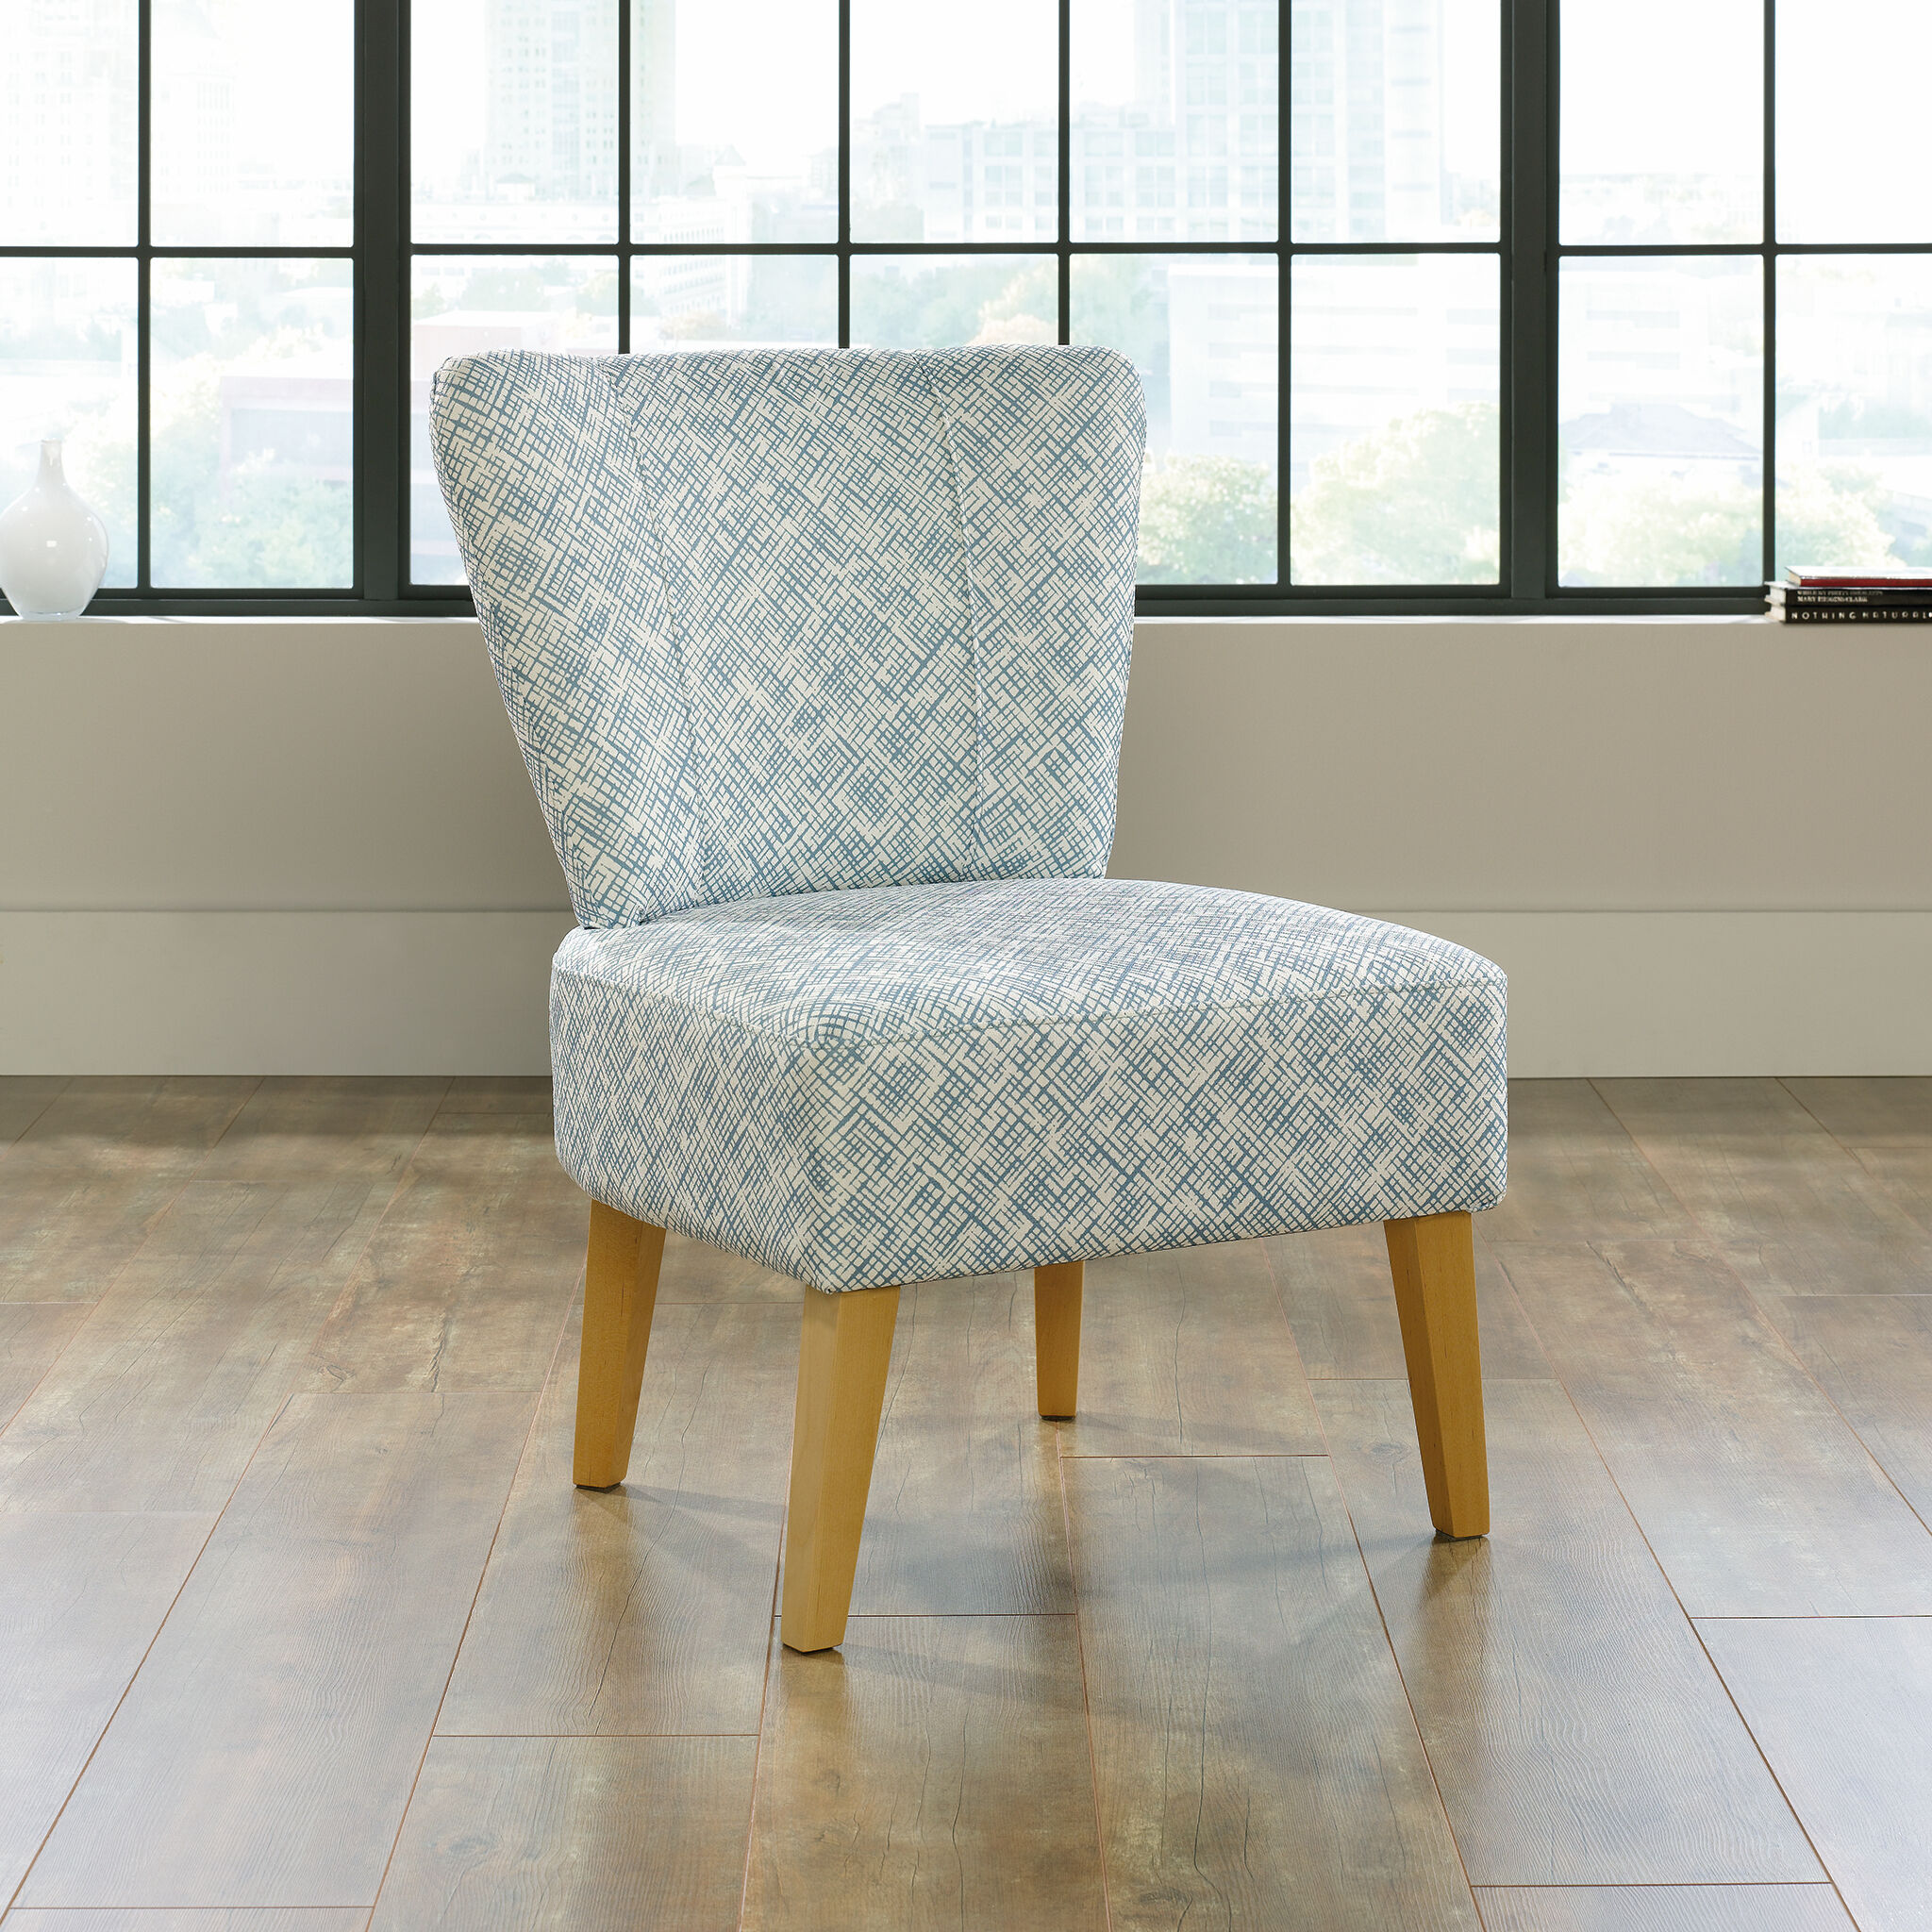 Contemporary ThatchPatterned 25 Accent Chair in Blue